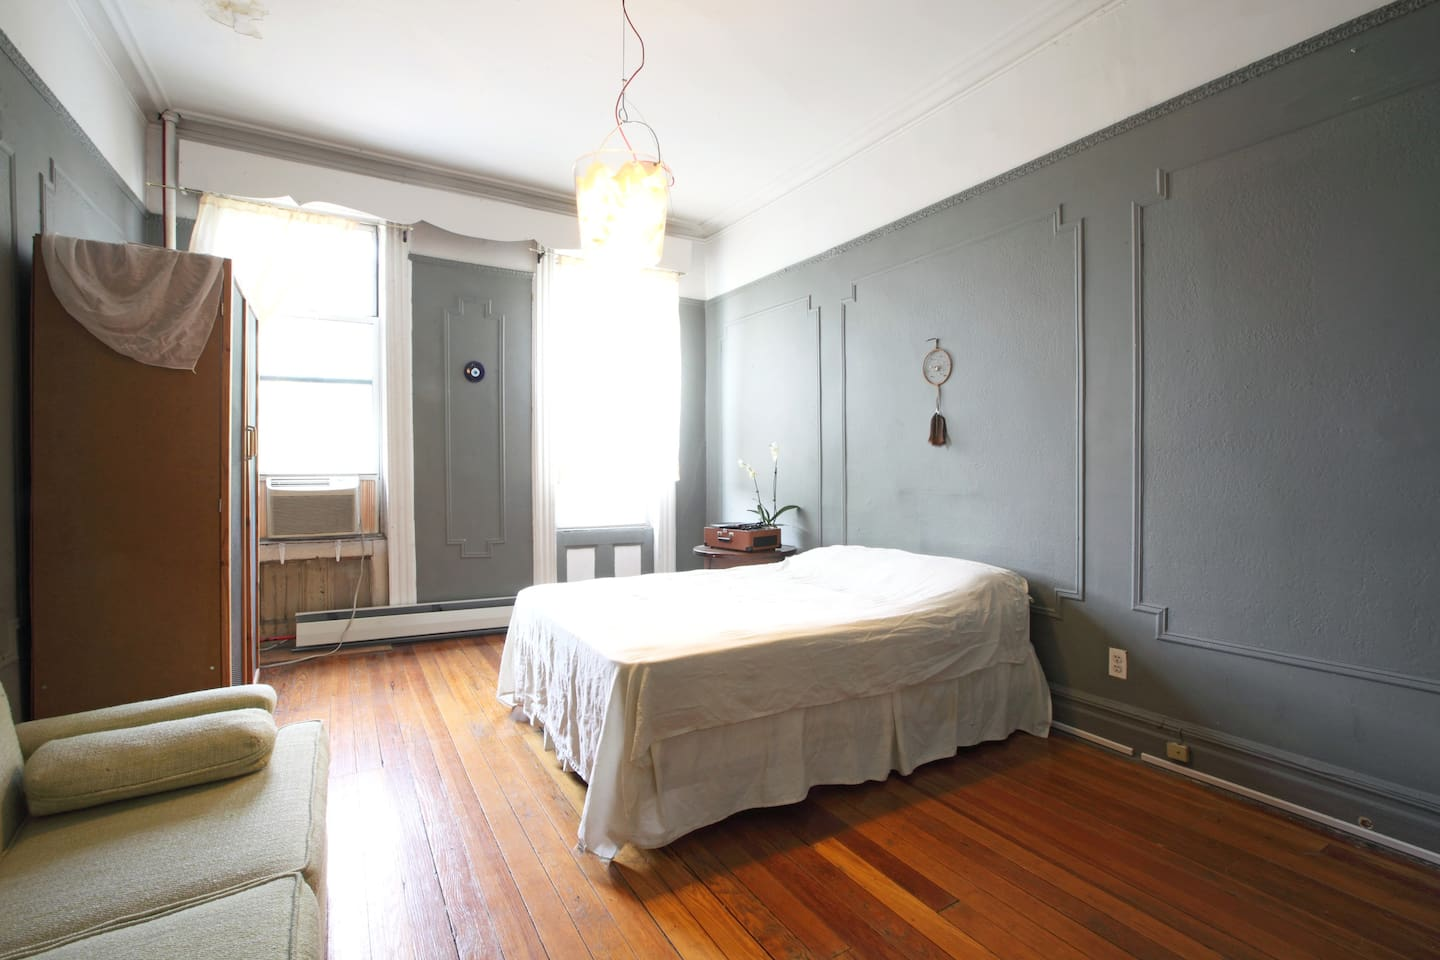 Bedroom:: full sized bed, air conditioner, 7 foot couch & standing closet